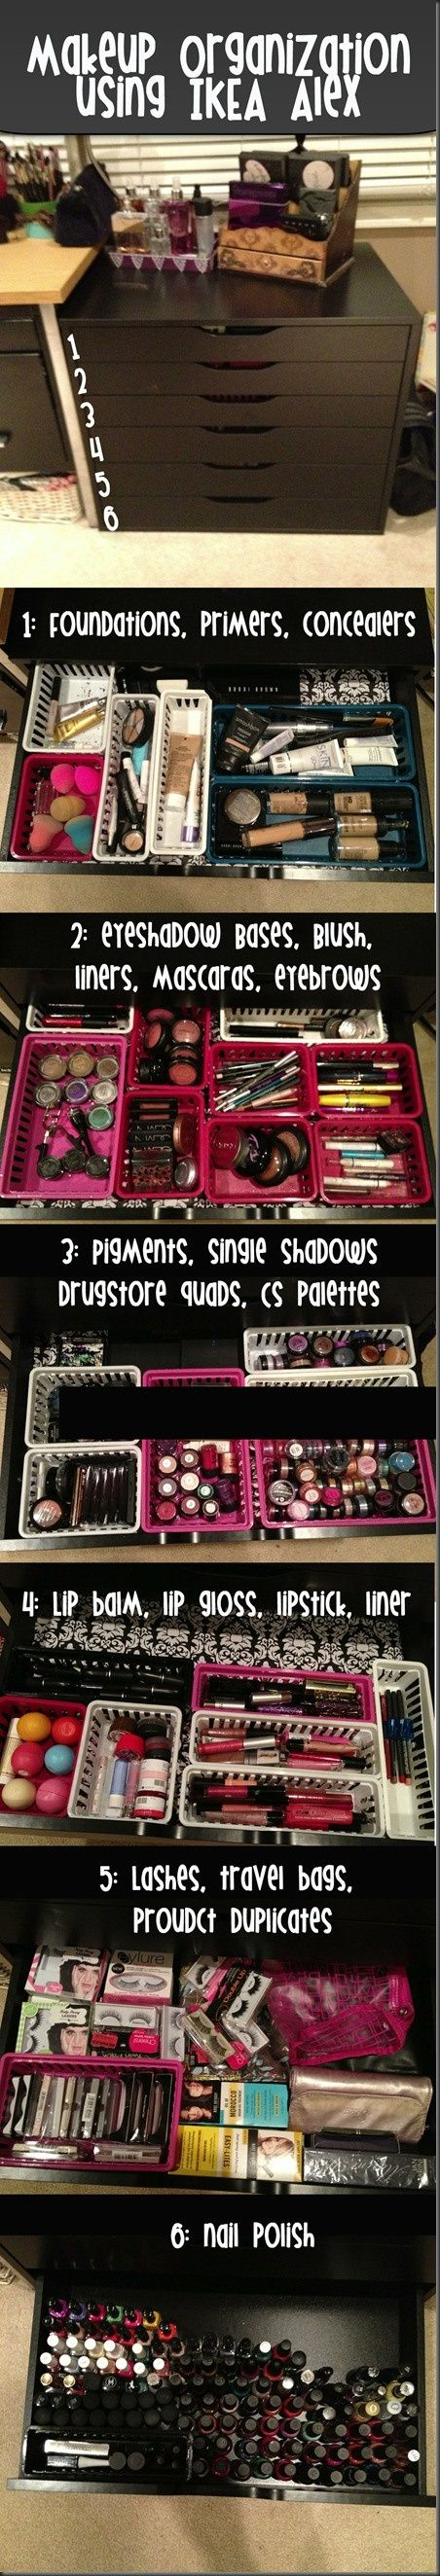 the world s catalog of ideas makeup organization using ikea jenny overfield if you like this idea we could divide each drawer in half since its huge and use it to keep the clutter off